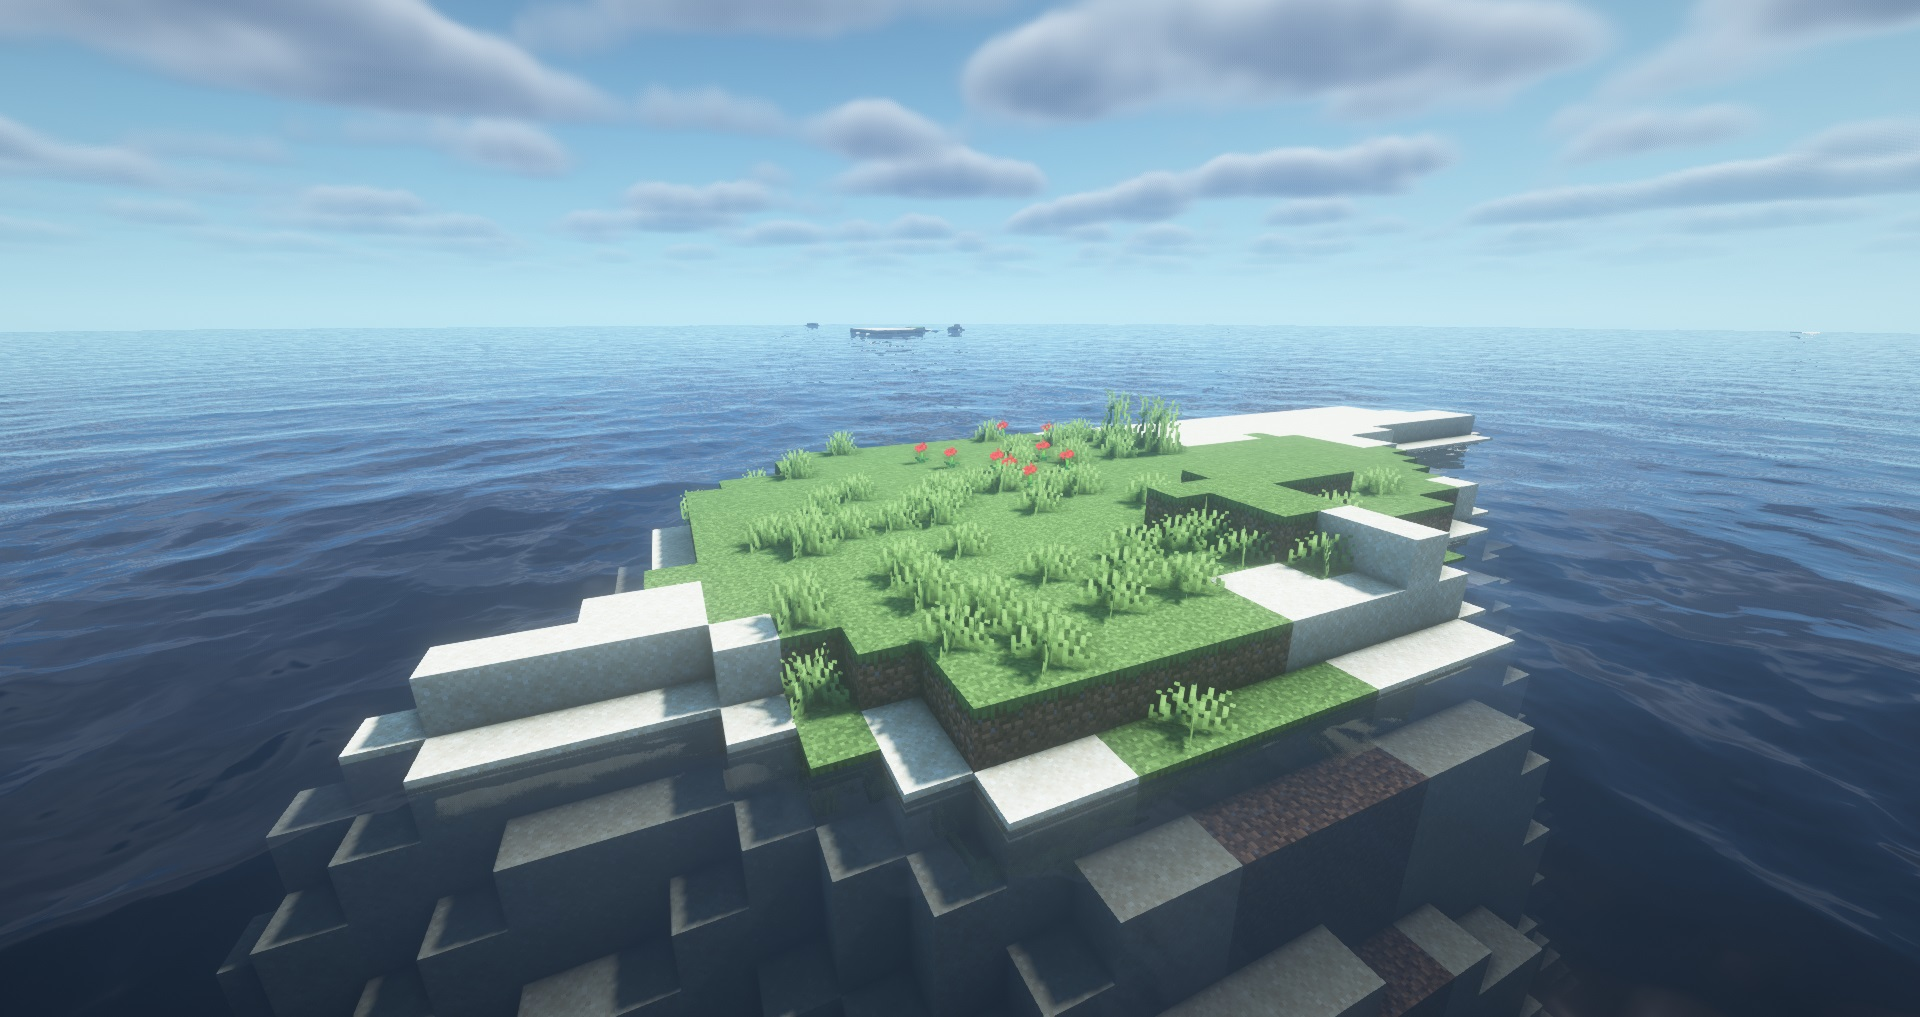 Minecraft seeds - Minimalist survival island - A very tiny island with only grass, dirt, and sand blocks, surrounded by ocean nearly as far as the eye can see.